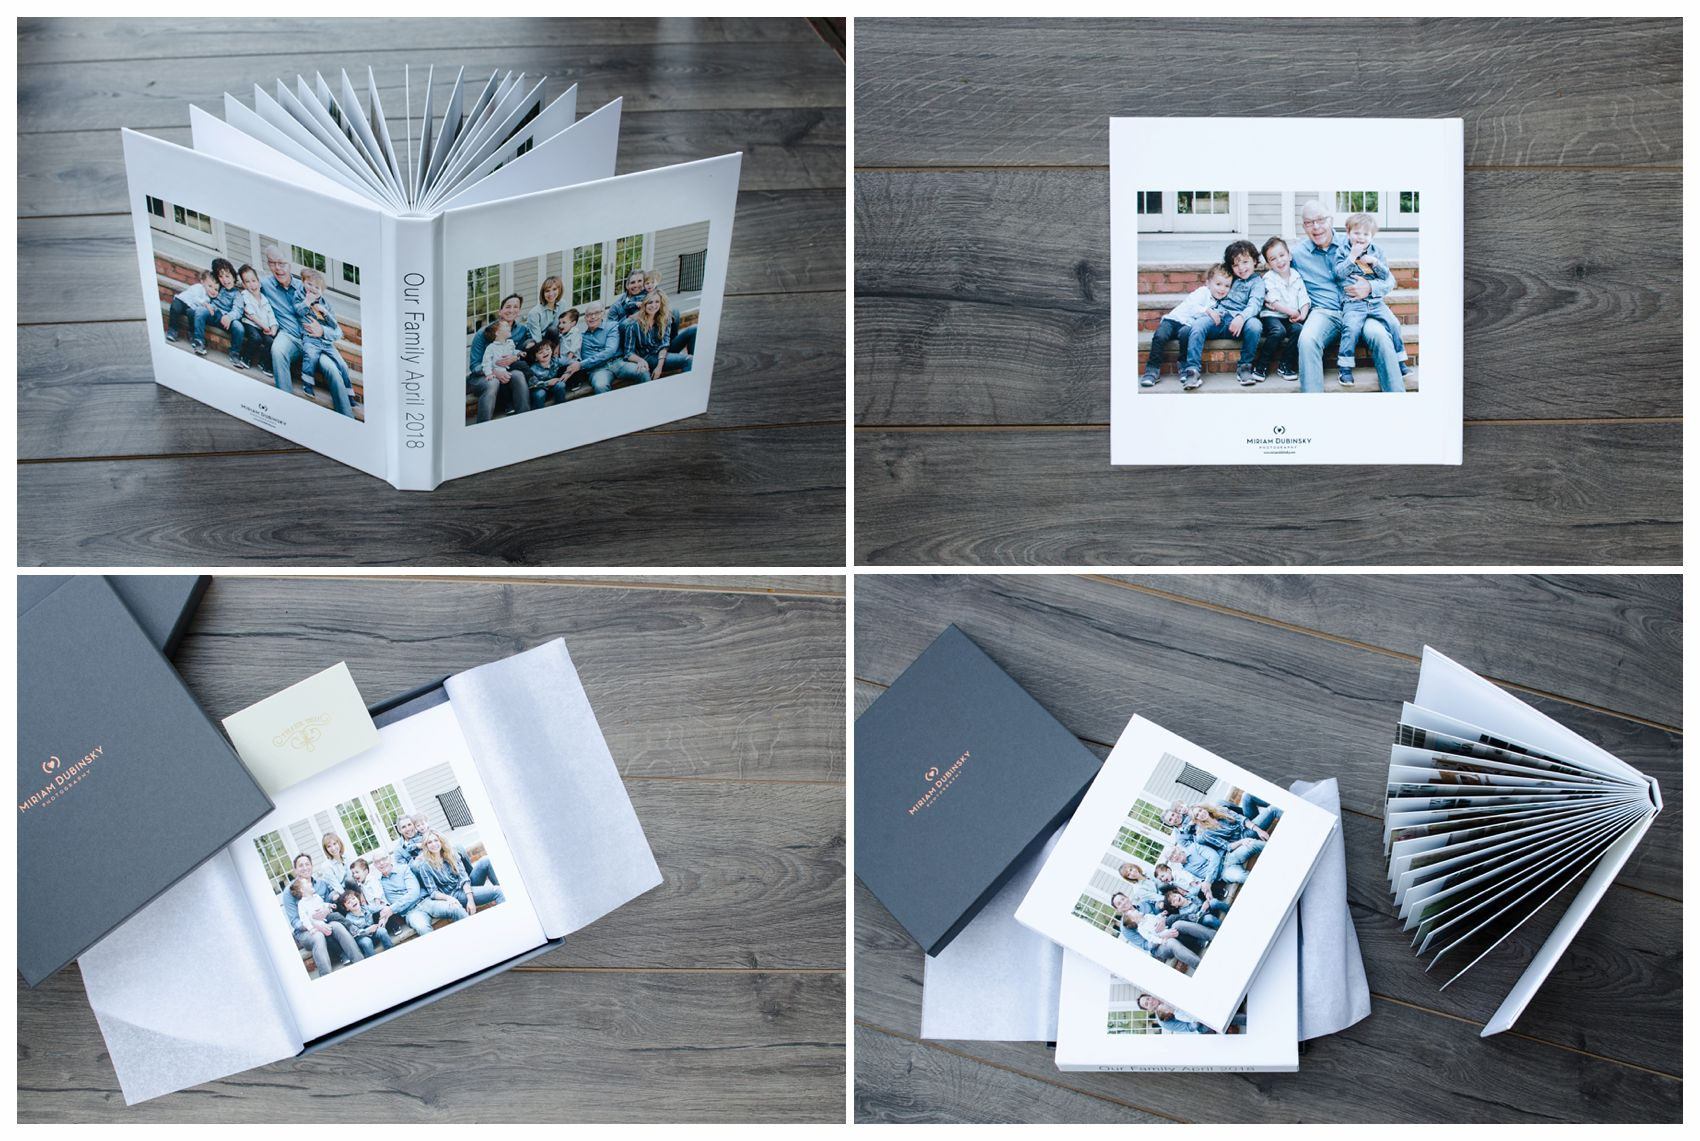 matching heirloom family albums for kids parents and grandparents of their extended family session in NYC